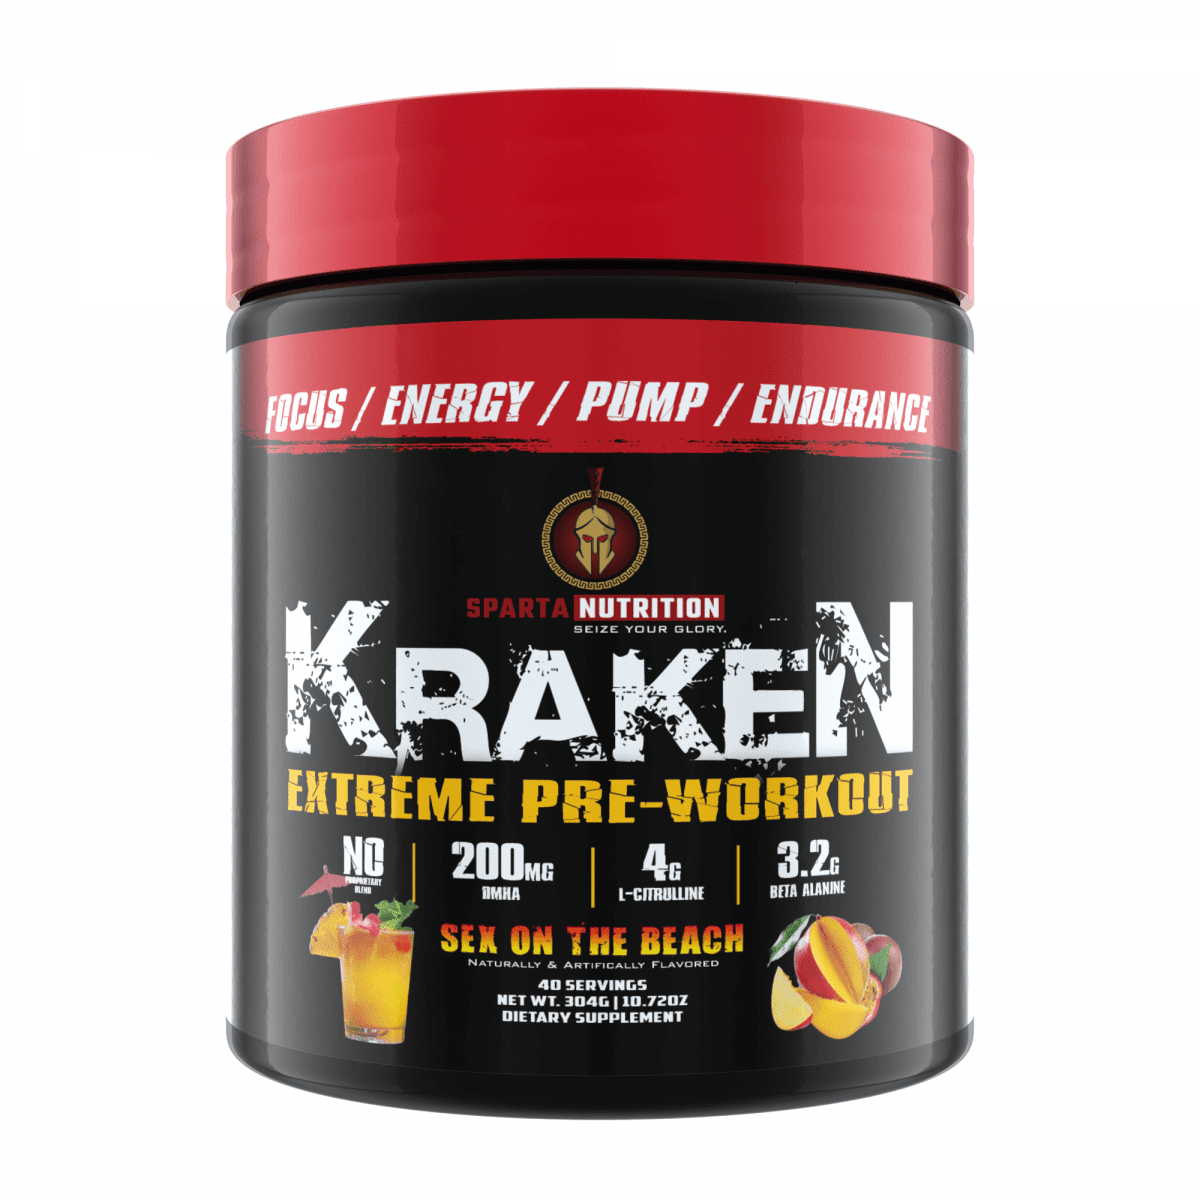 Sparta Nutrition Kraken Pre Workout - Sex on the Beach - 40 Servings